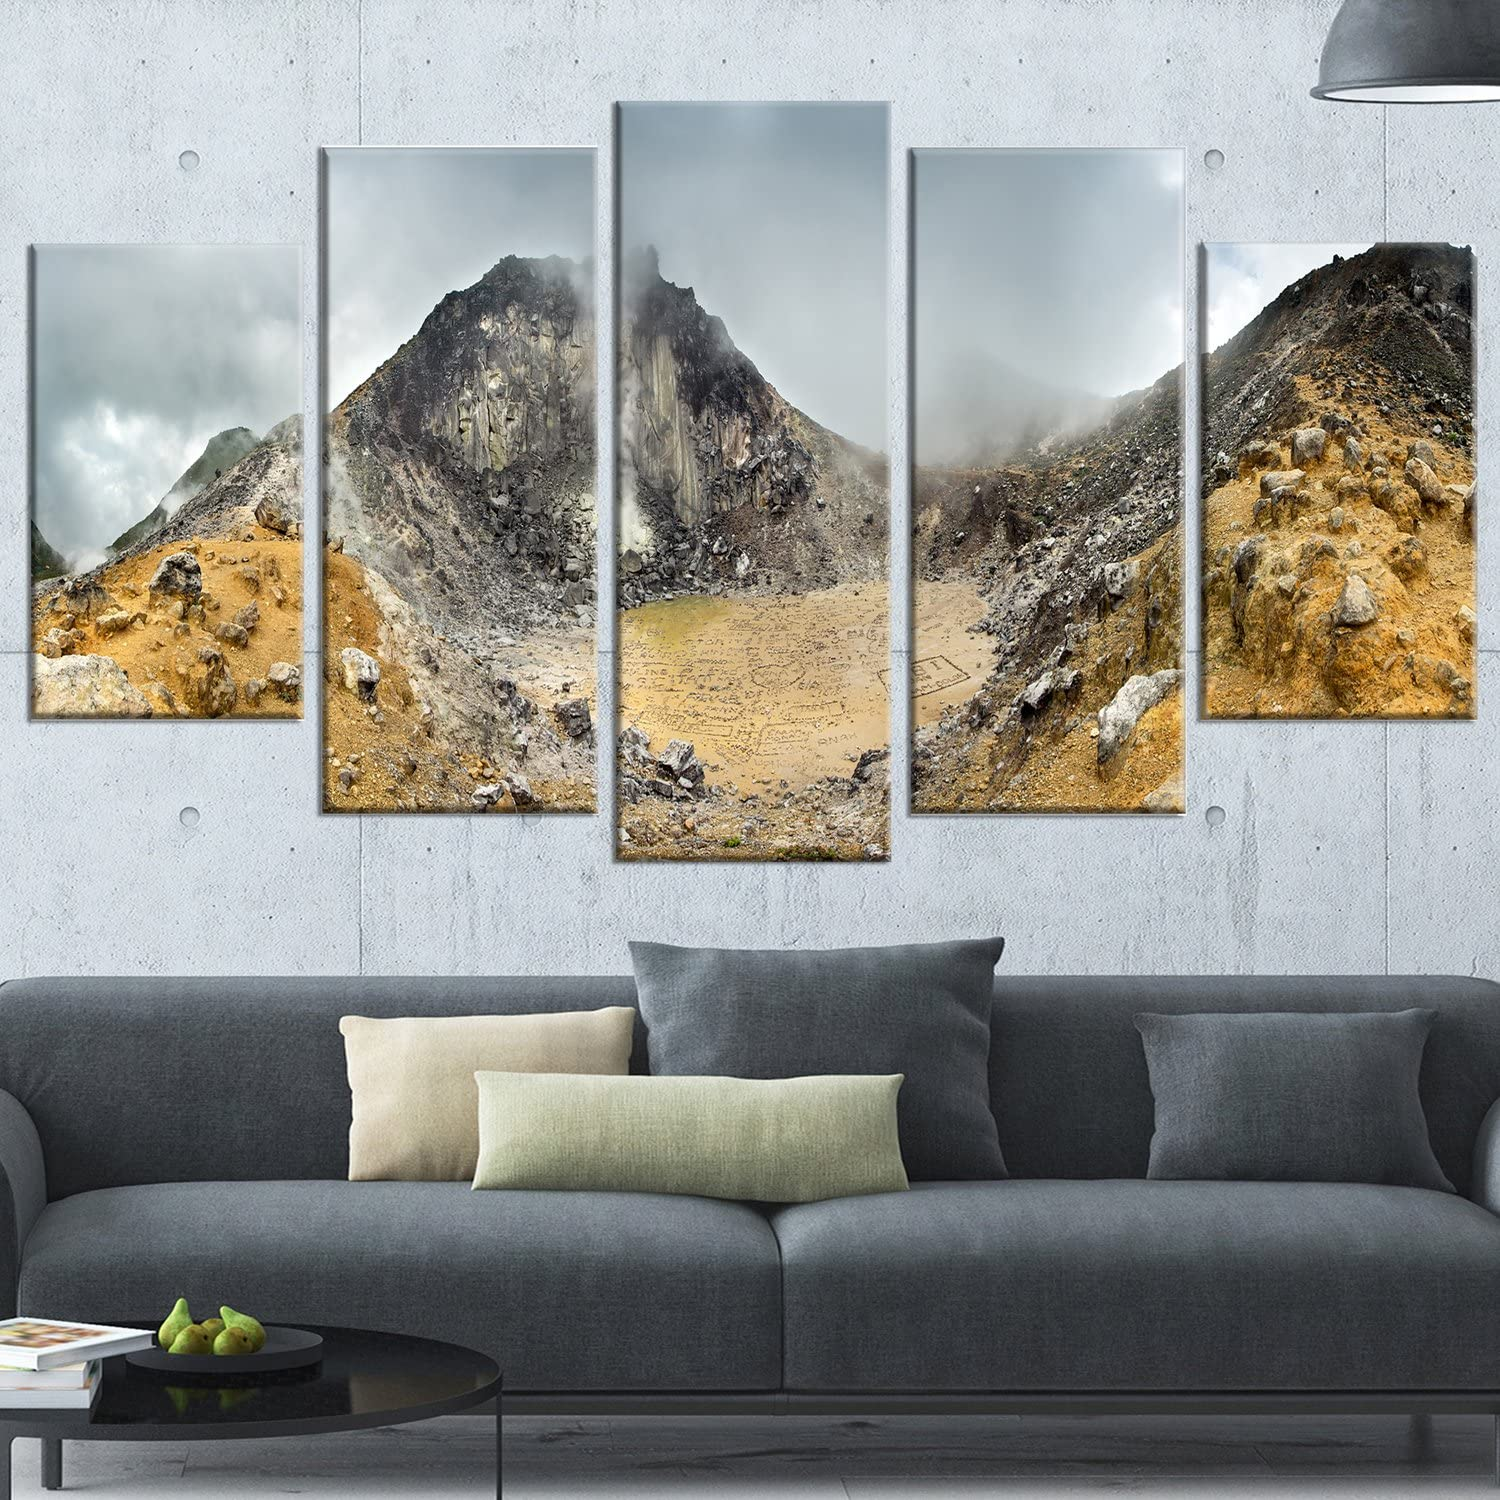 Amazon Com Design Art Volcano Panorama With Dramatic Sky Landscape Wall Art Canvas Print 60x32 5 Piece Pt11046 373 60x32 5 Panels Diamond Shape Posters Prints